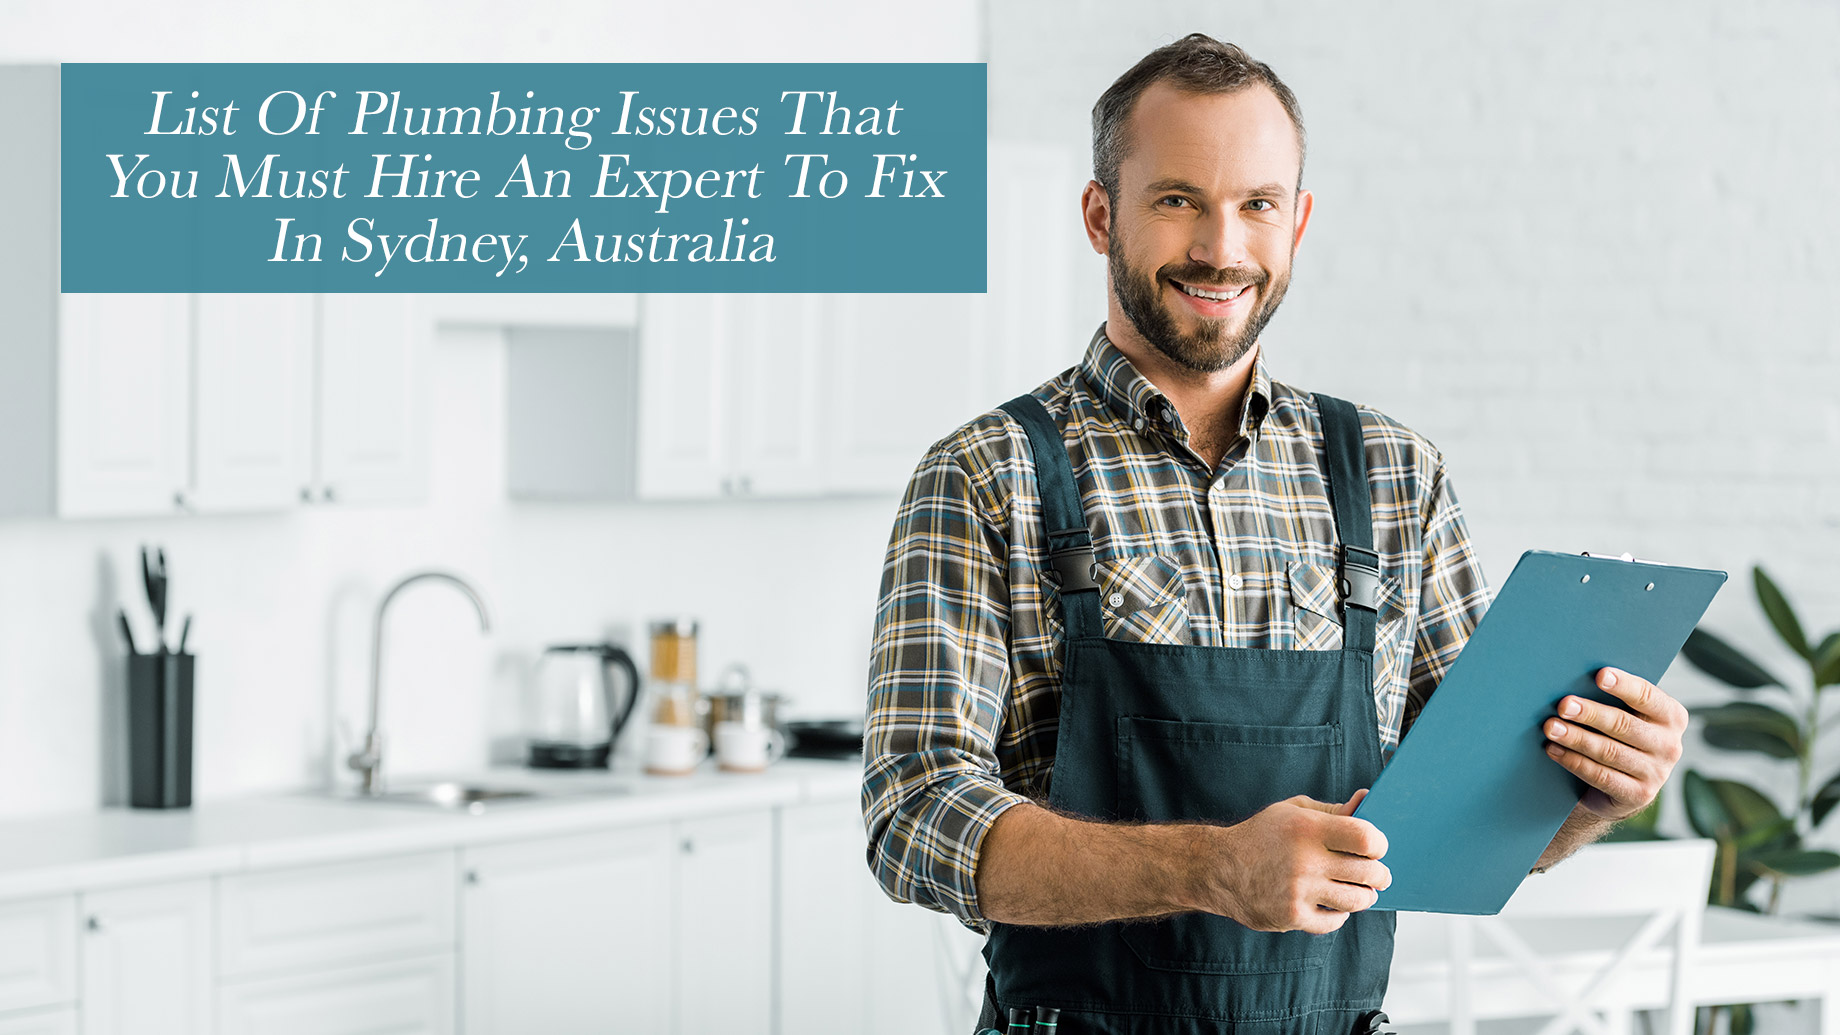 List Of Plumbing Issues That You Must Hire An Expert To Fix In Sydney, Australia